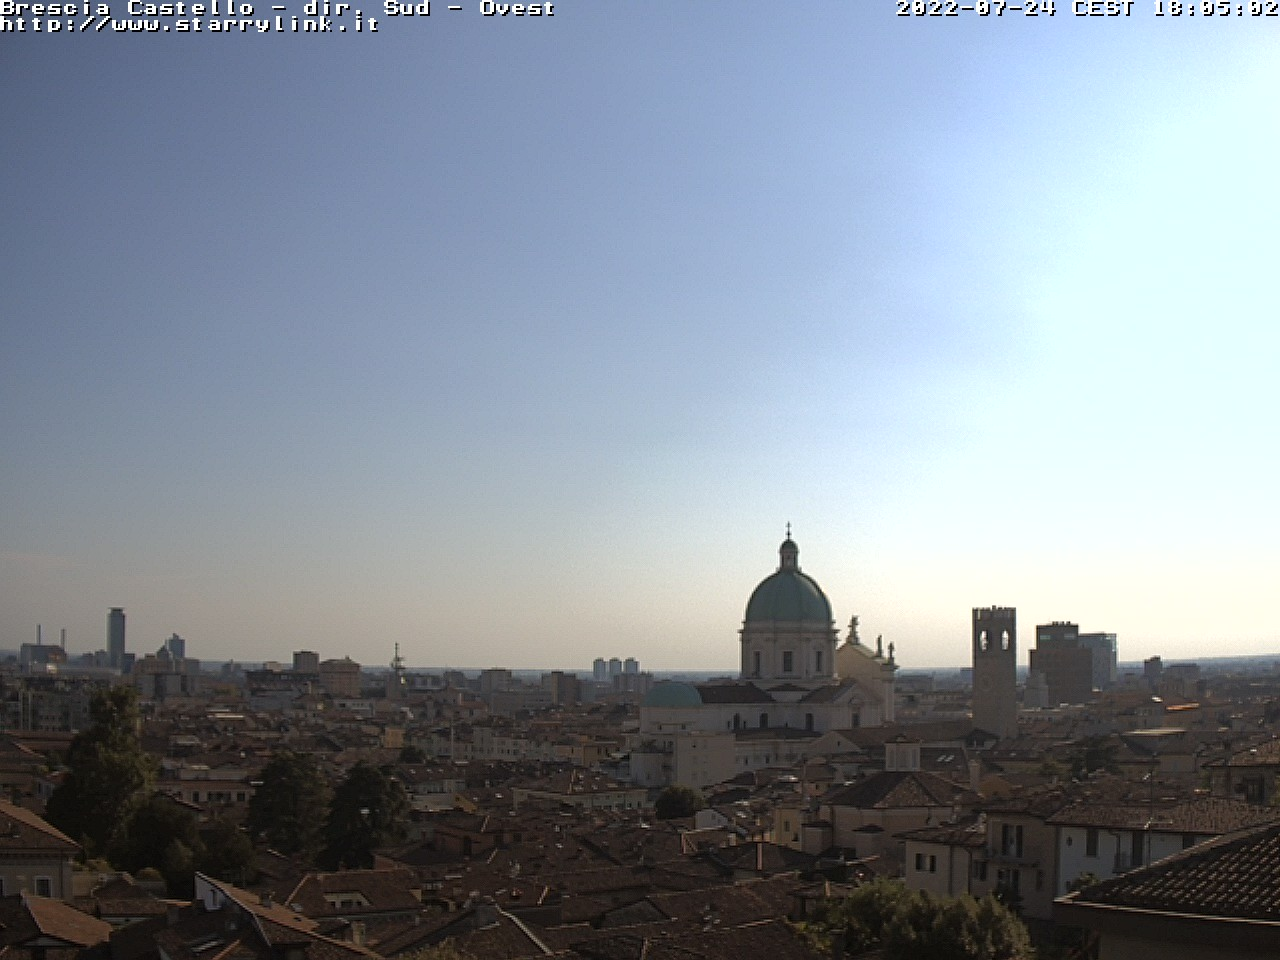 http://www.starrylink.it/webcam/brescia/brescia1M.jpg